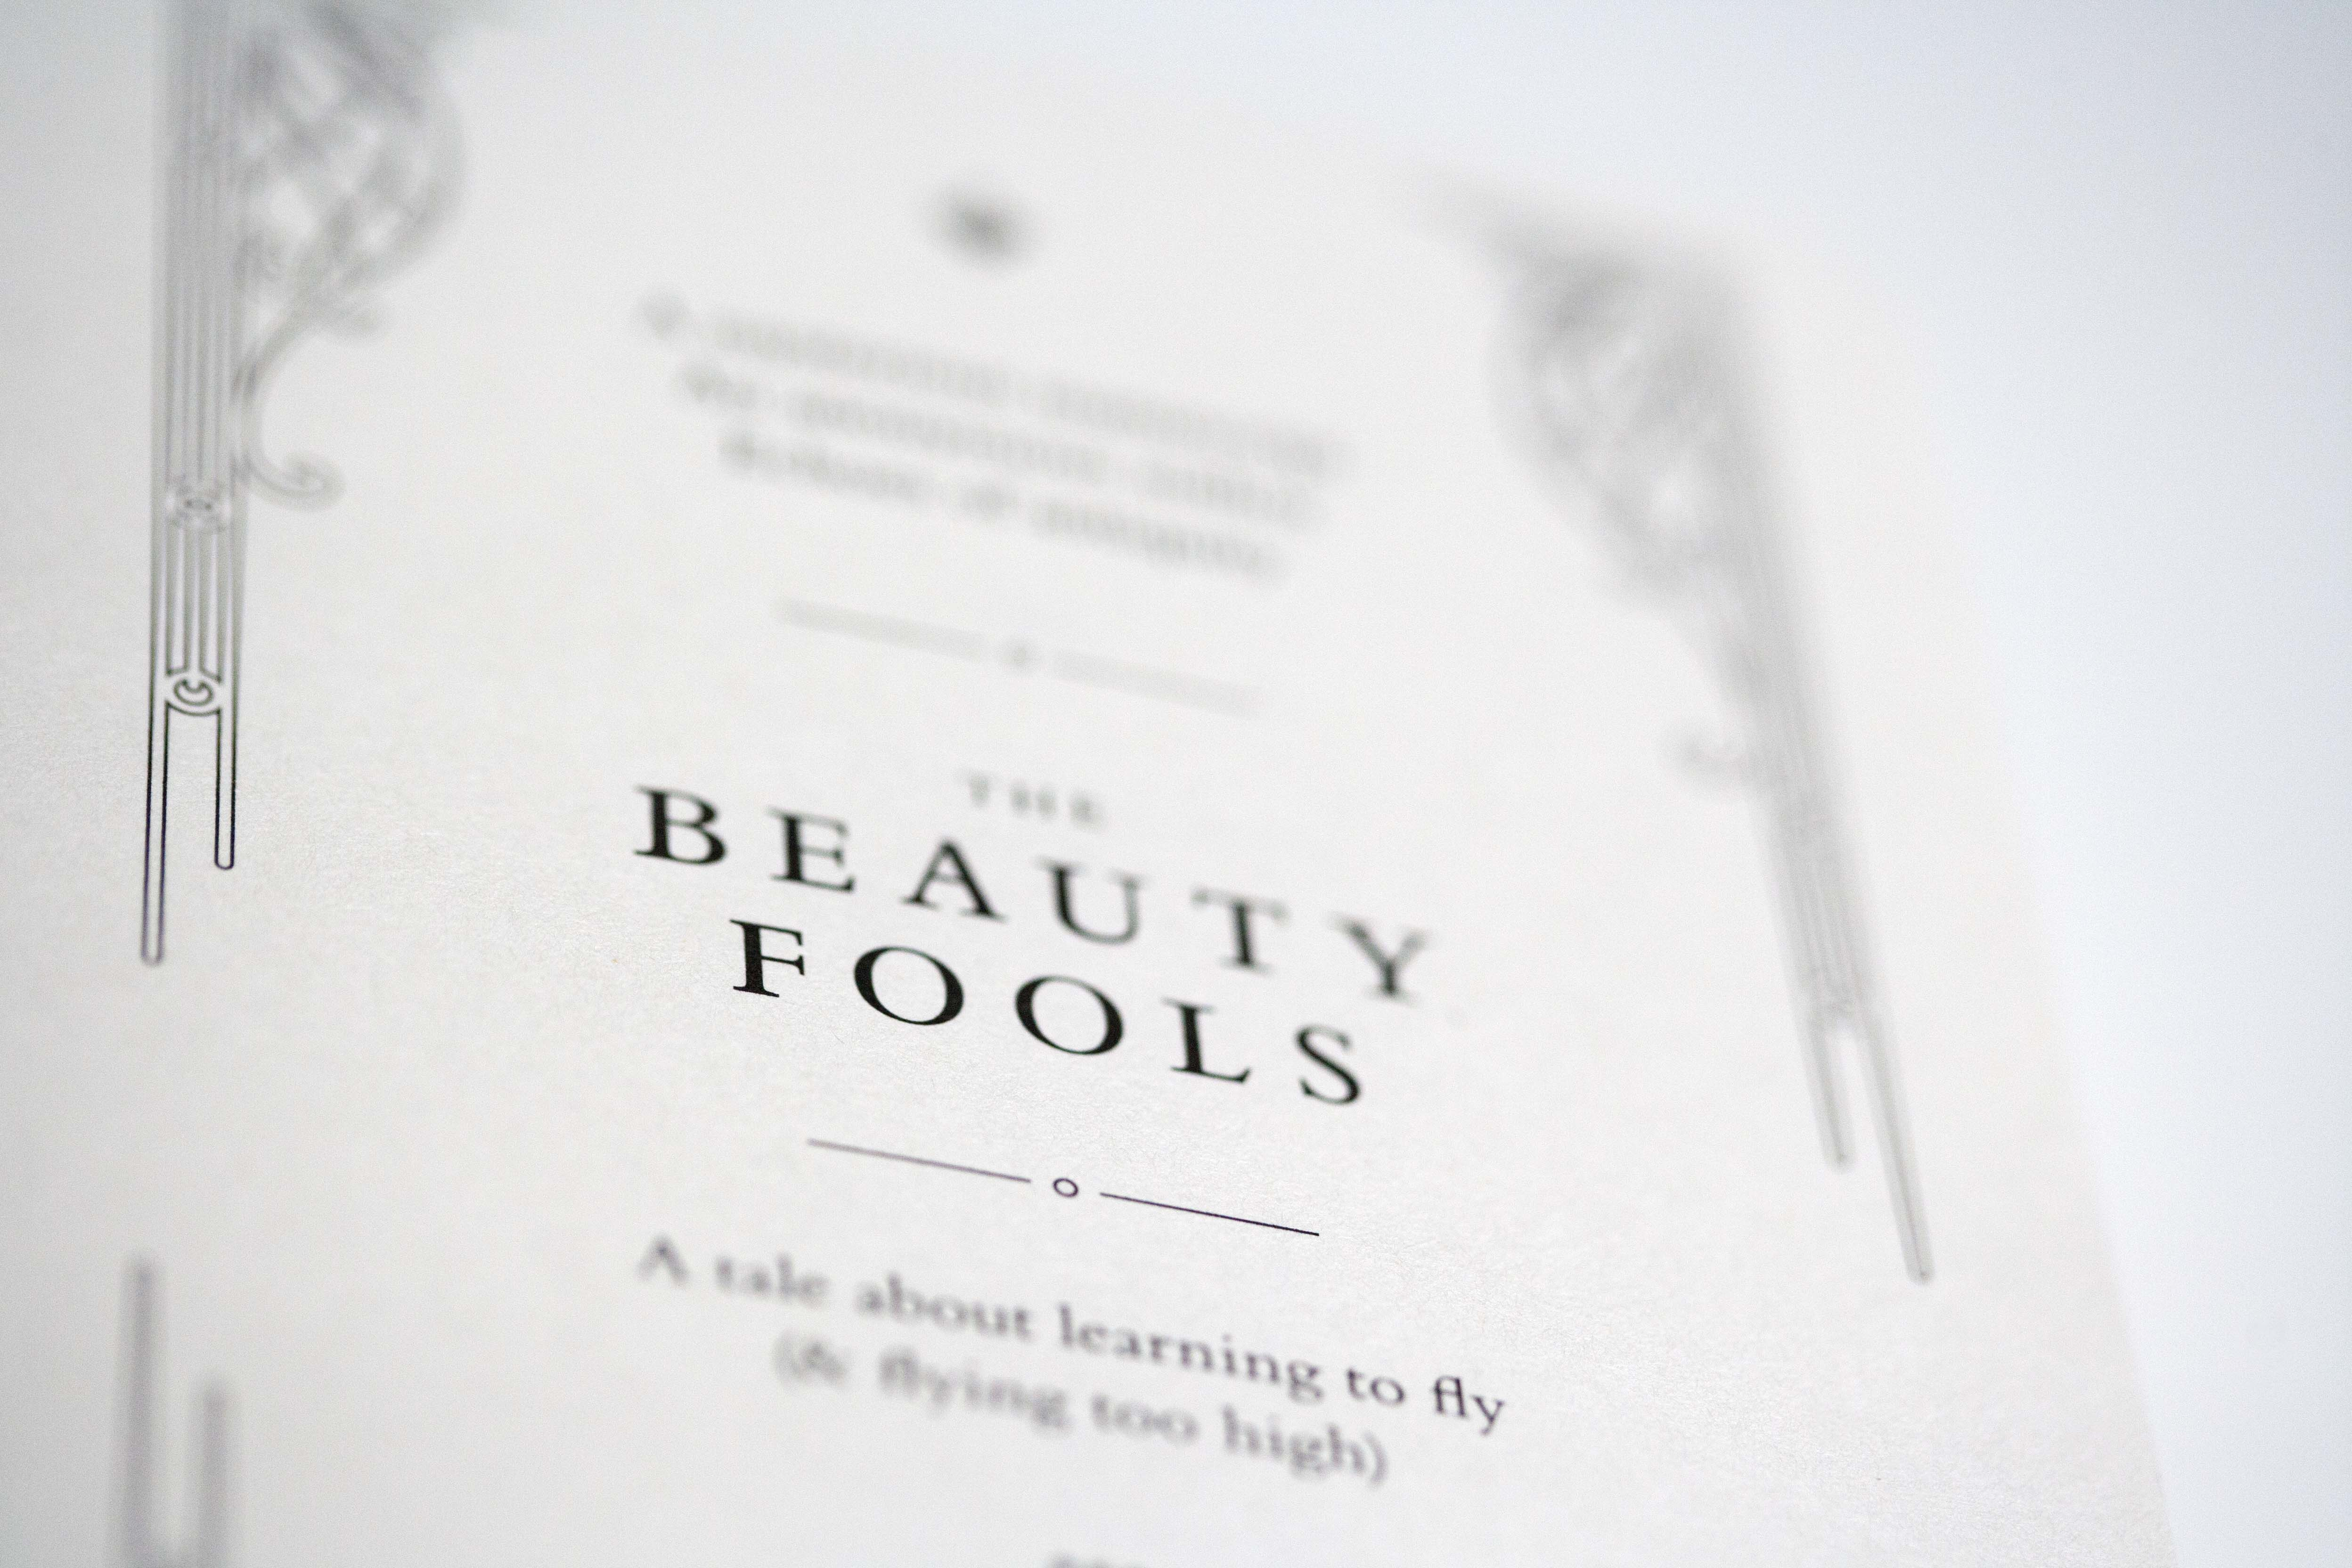 The Beauty Fools inside cover